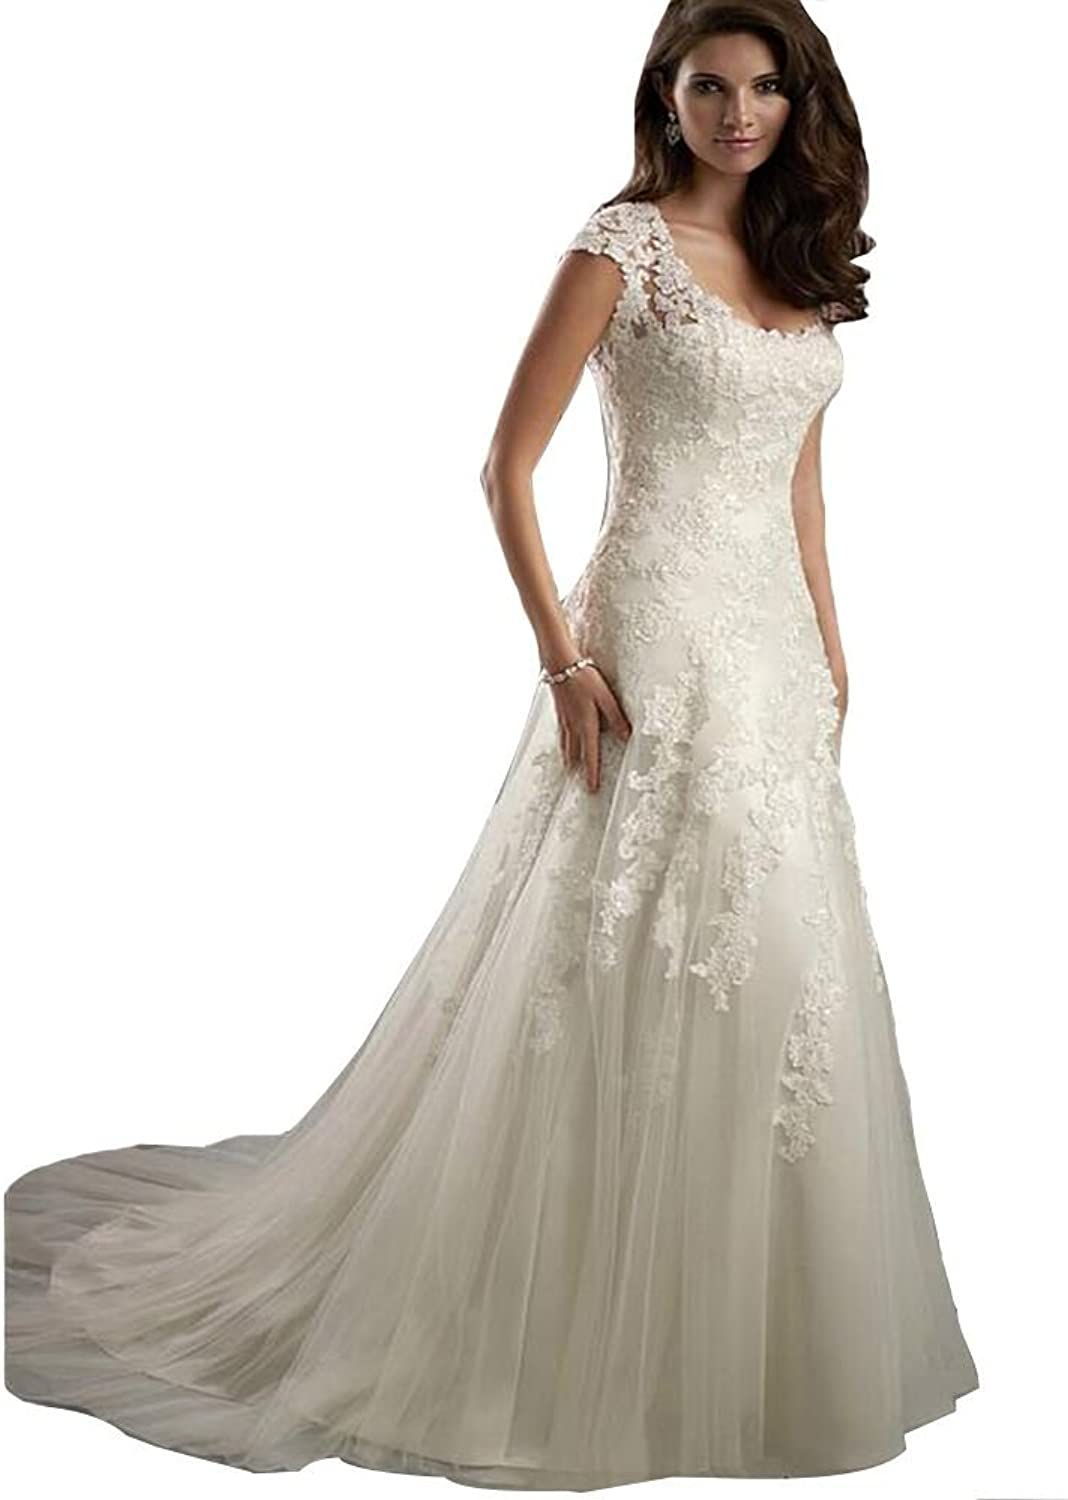 Sunnygirls Women Elegant Lace Appliques A Line Wedding Dress Open Back